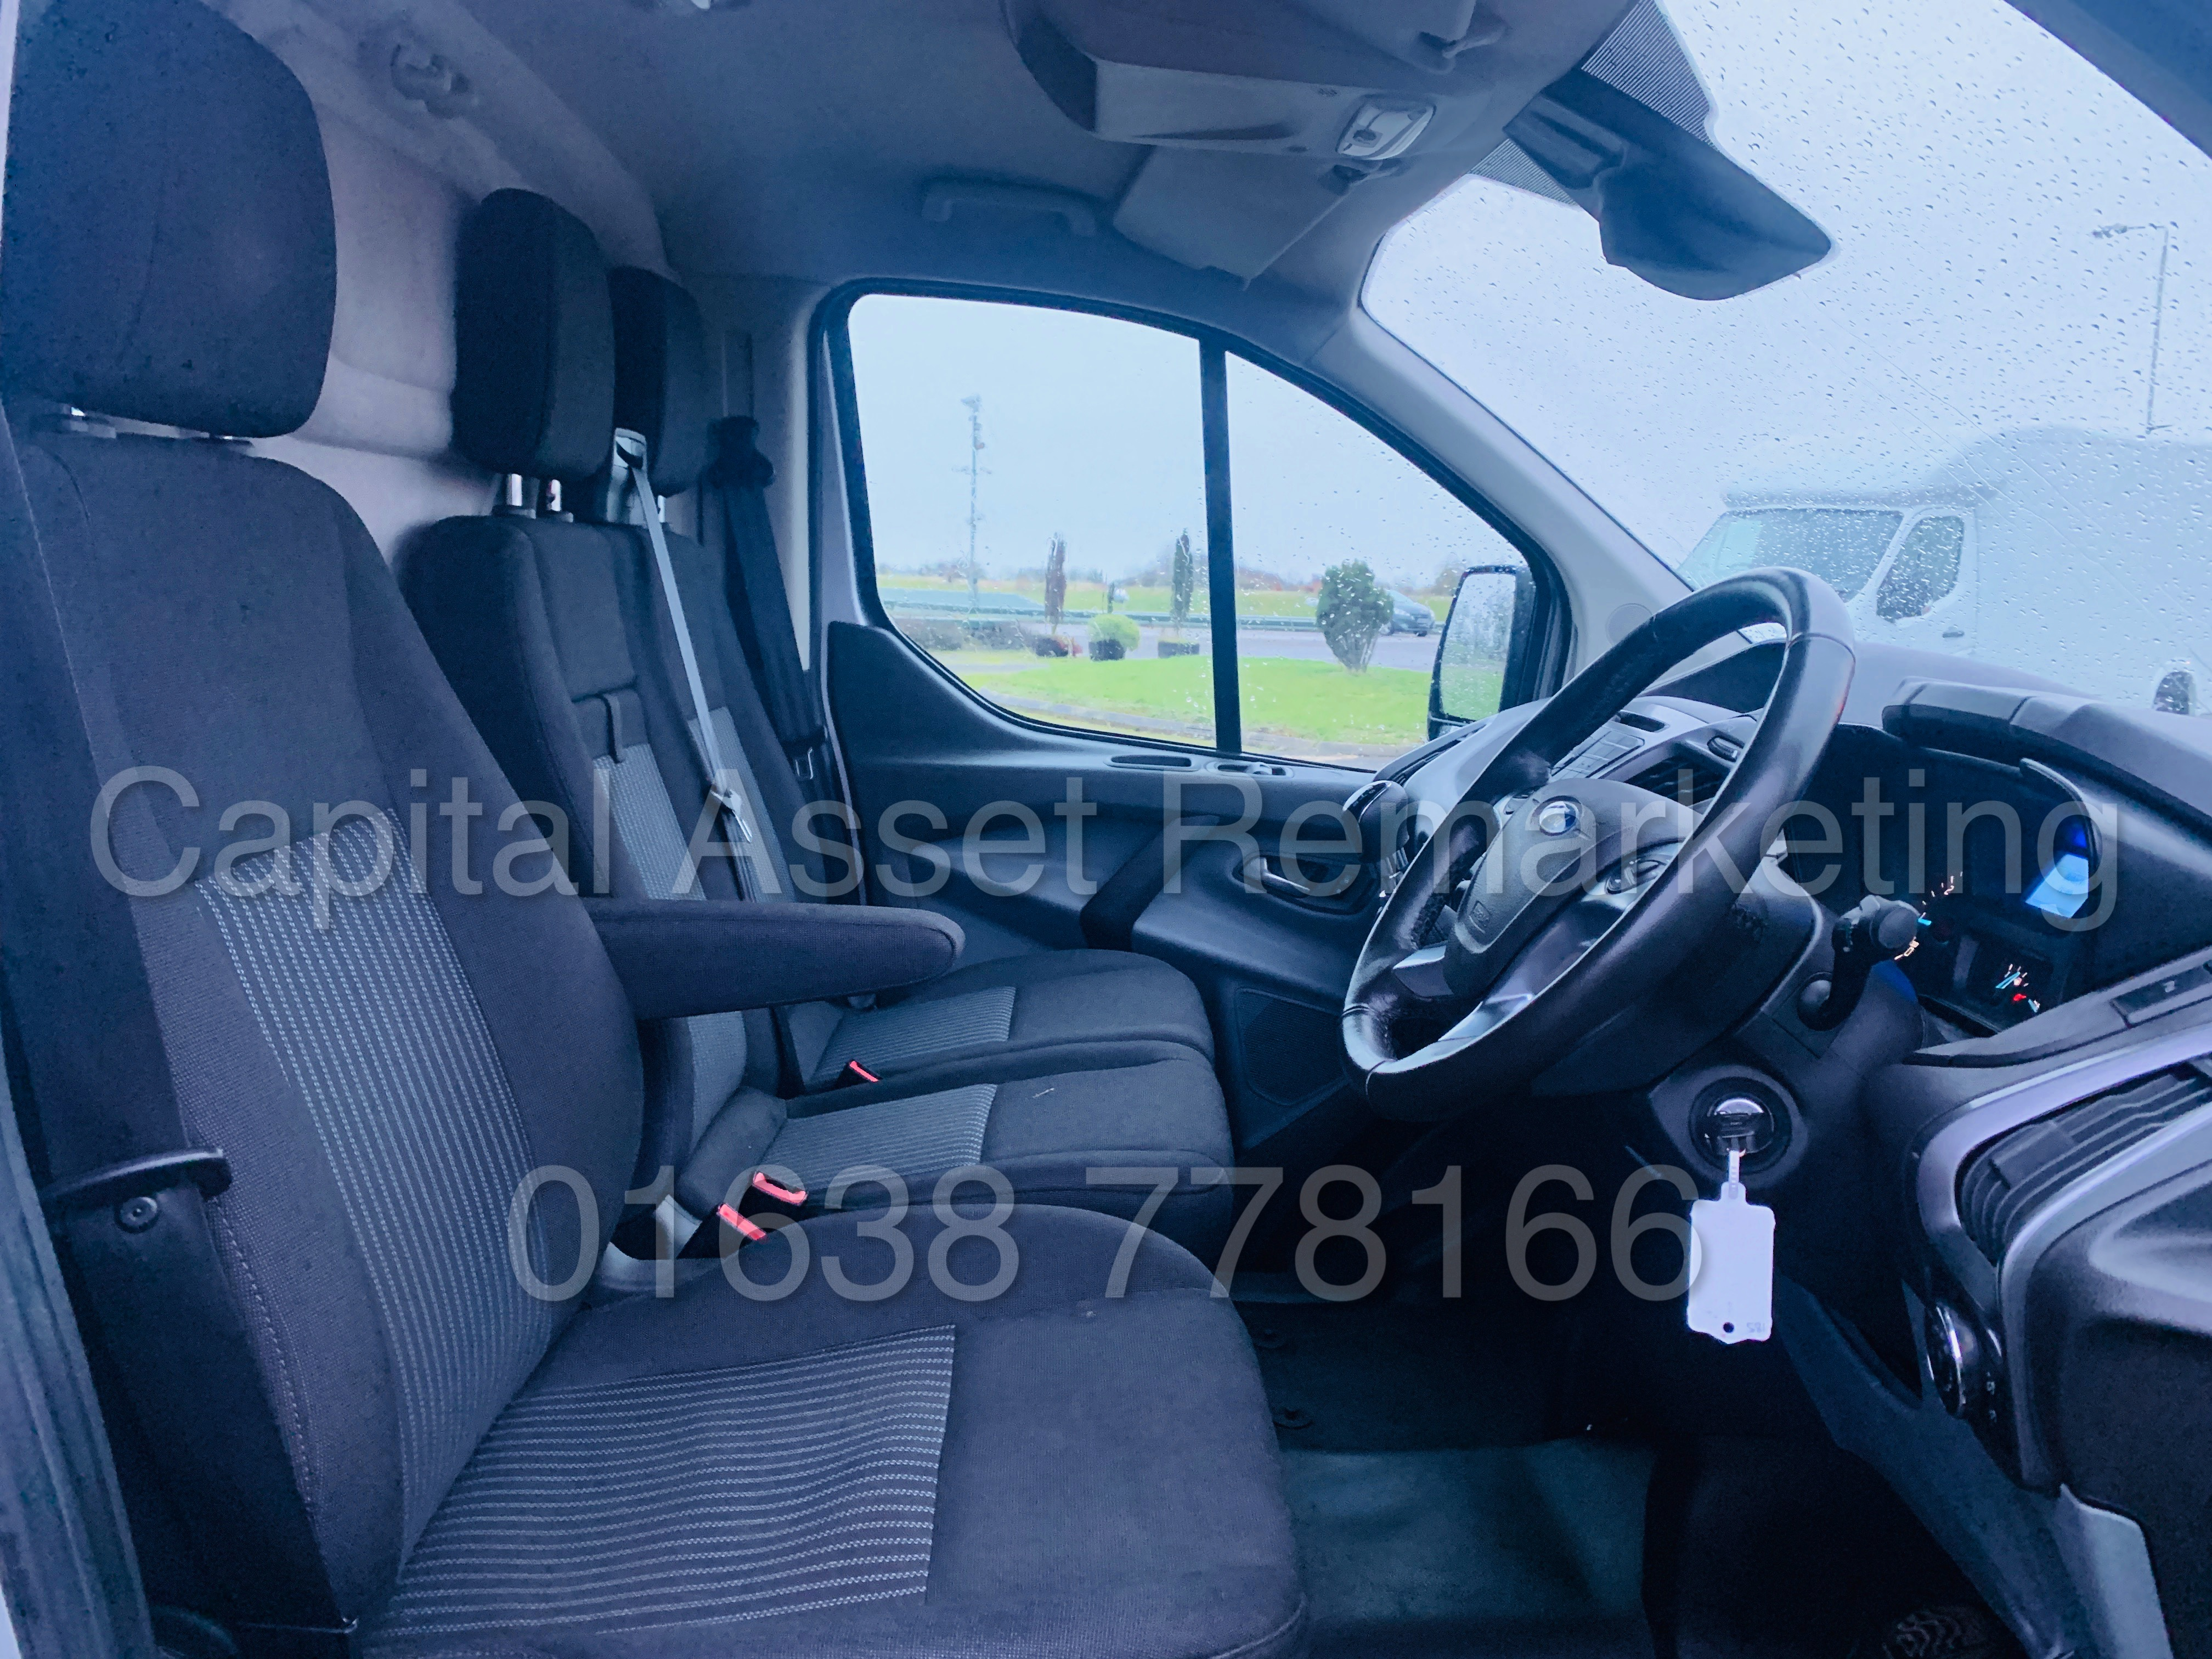 (On Sale) FORD TRANSIT *TREND* 290 SWB (2017 - EURO 6 / AD-BLUE) '2.0 TDCI - 130 BHP - 6 SPEED' - Image 27 of 41